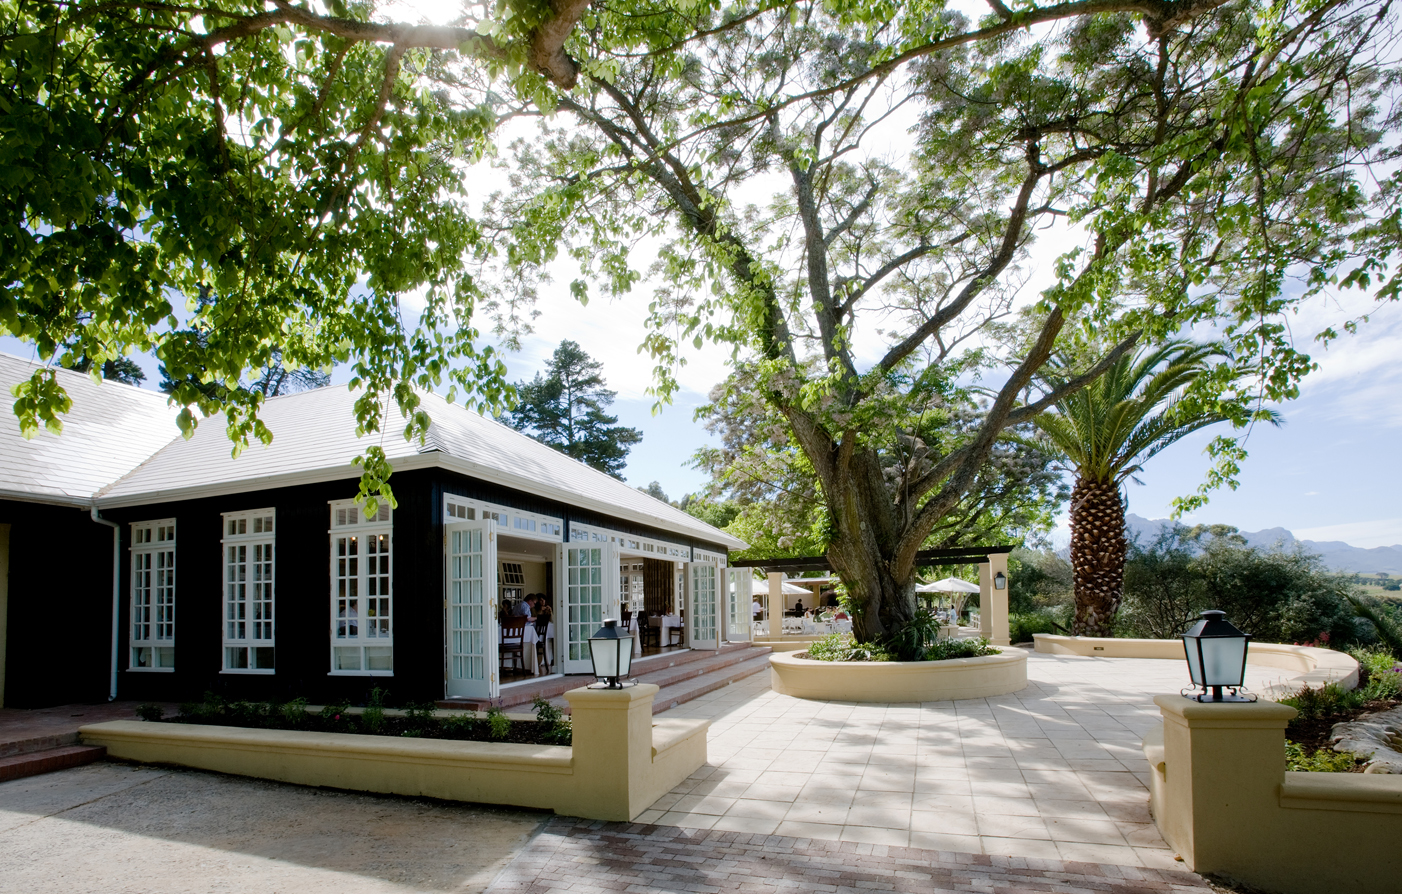 The Devon Valley Hotel  in Stellenbosch